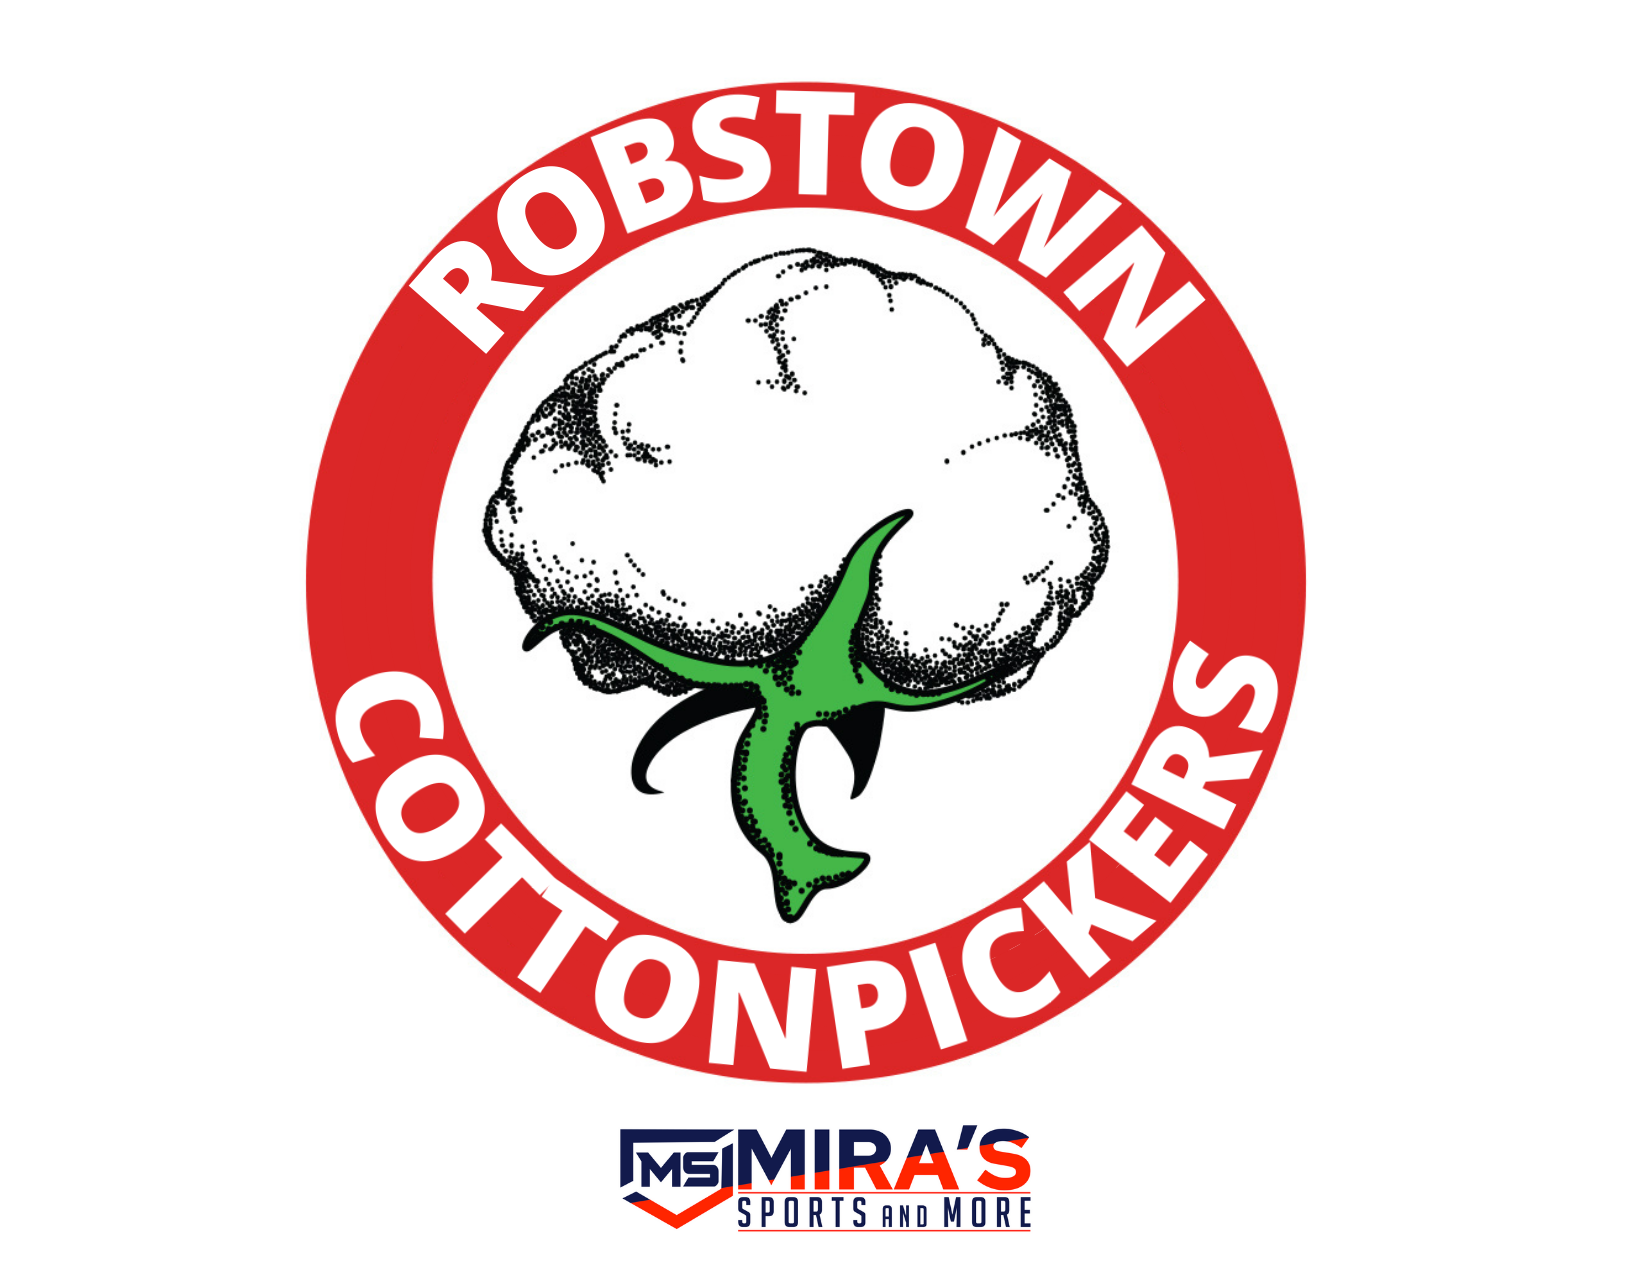 Robstown Cotton Pickers